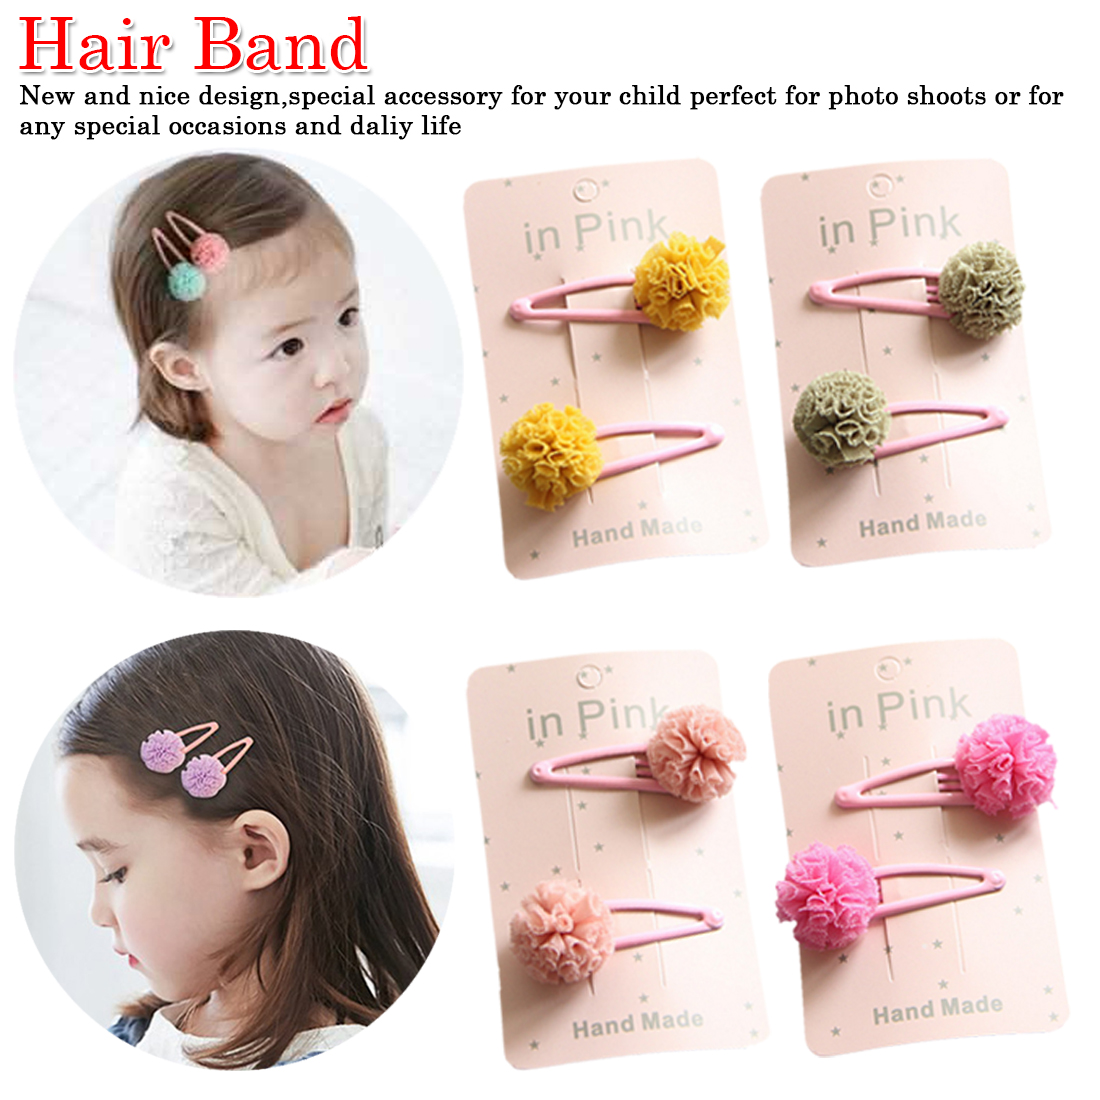 2Pc/Set Cute Lace Pom Pom Baby Hair Clips Cute Kids Baby Girl Hairpin Haarspeldjes Barettes Fille Enfant Baby Hair Accessories